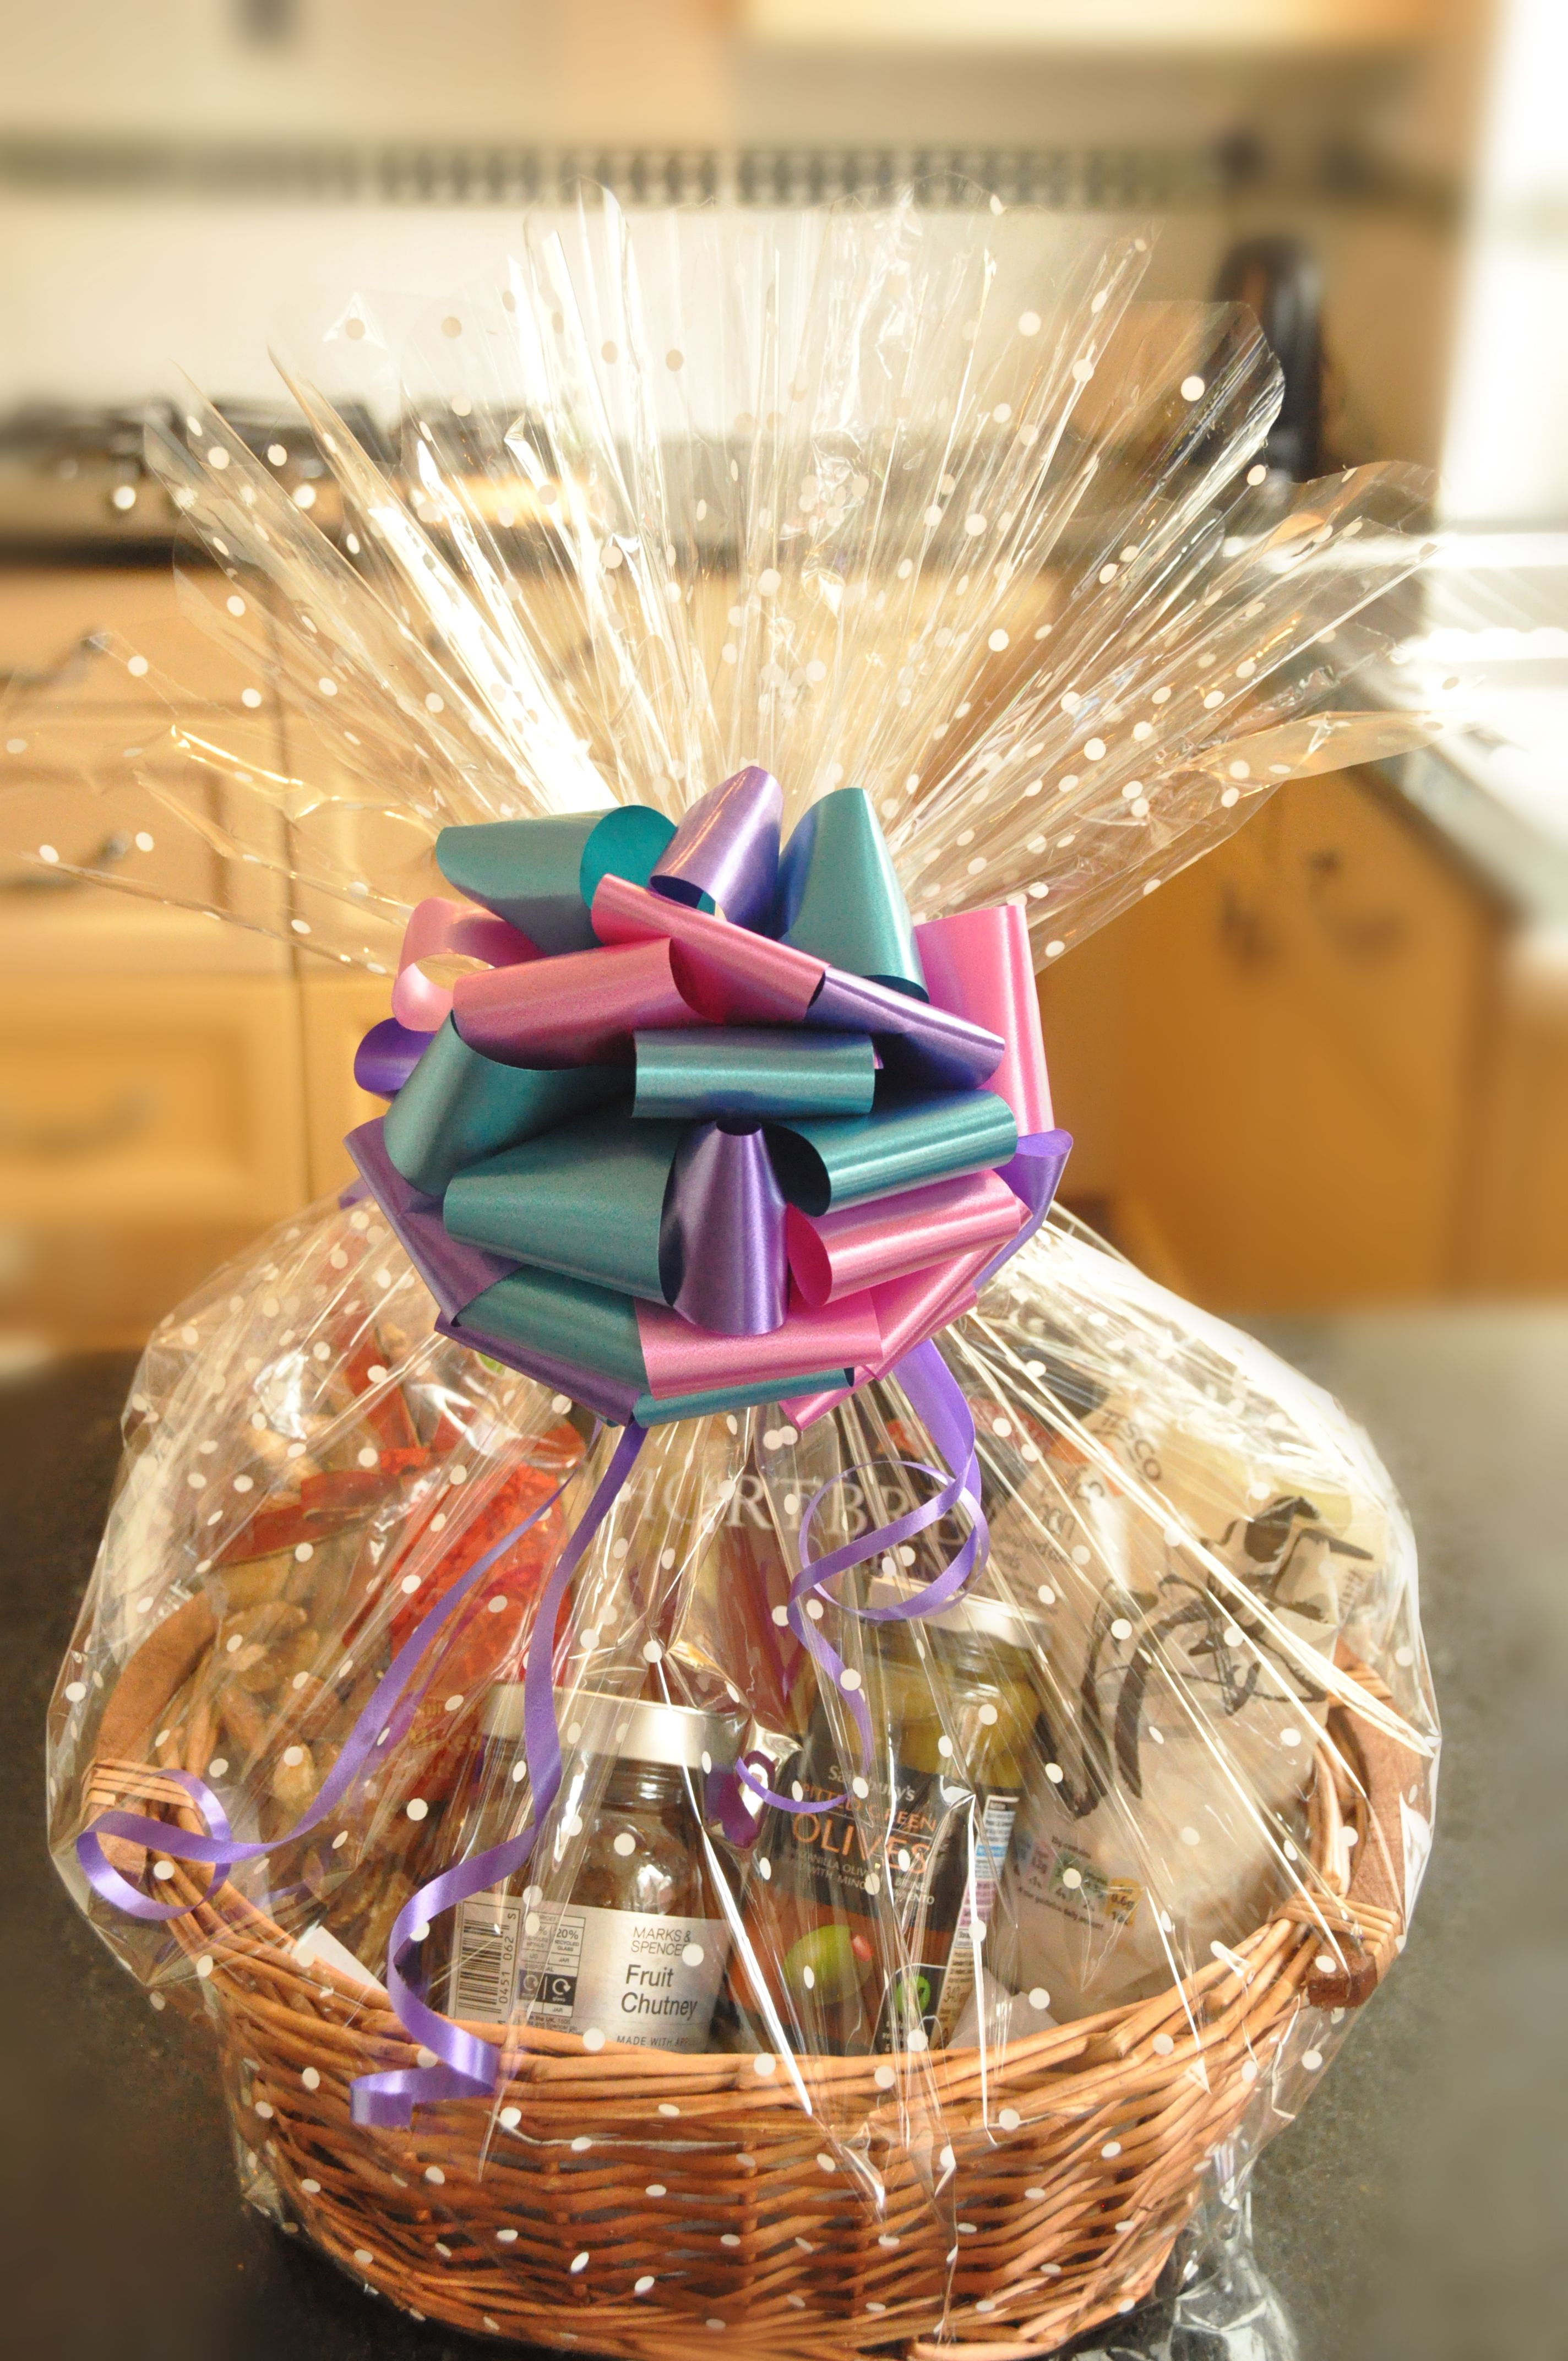 Hampers Gift Baskets Create Your Own Luxury With Our Step By